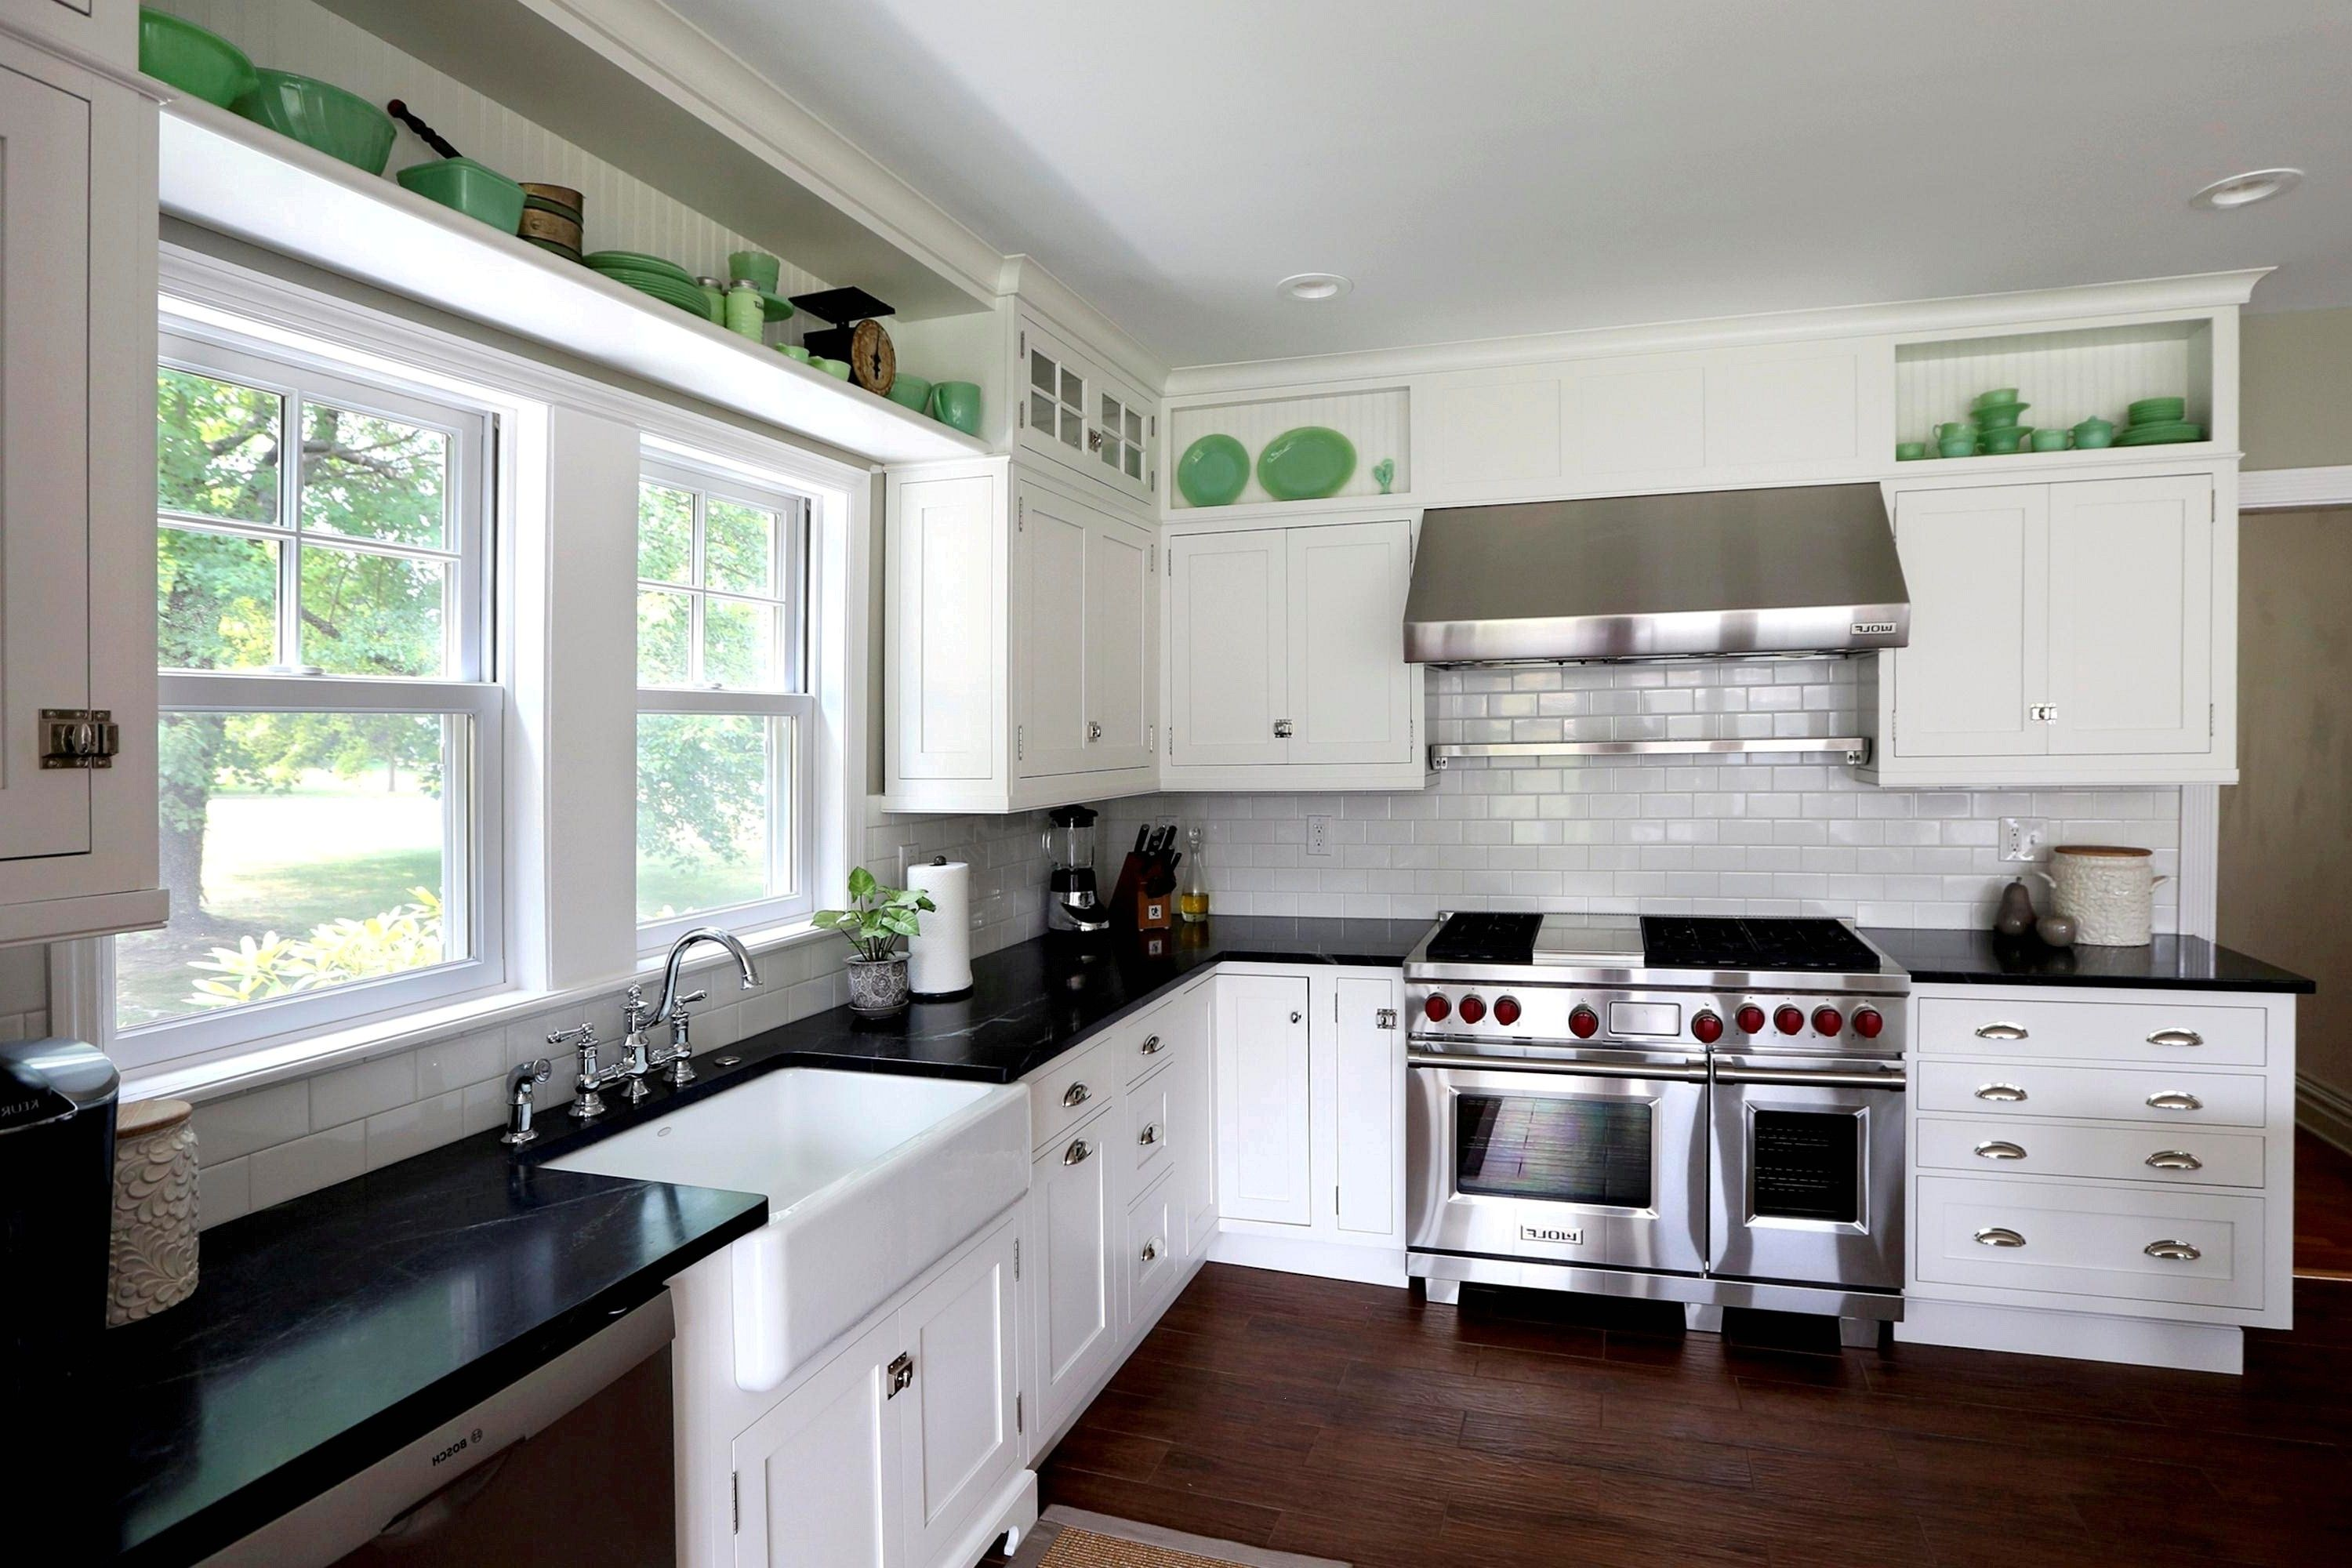 white cabinets dark countertop. image result for white cabinets, nutmeg stain oak floor, what countertops cabinets dark countertop a